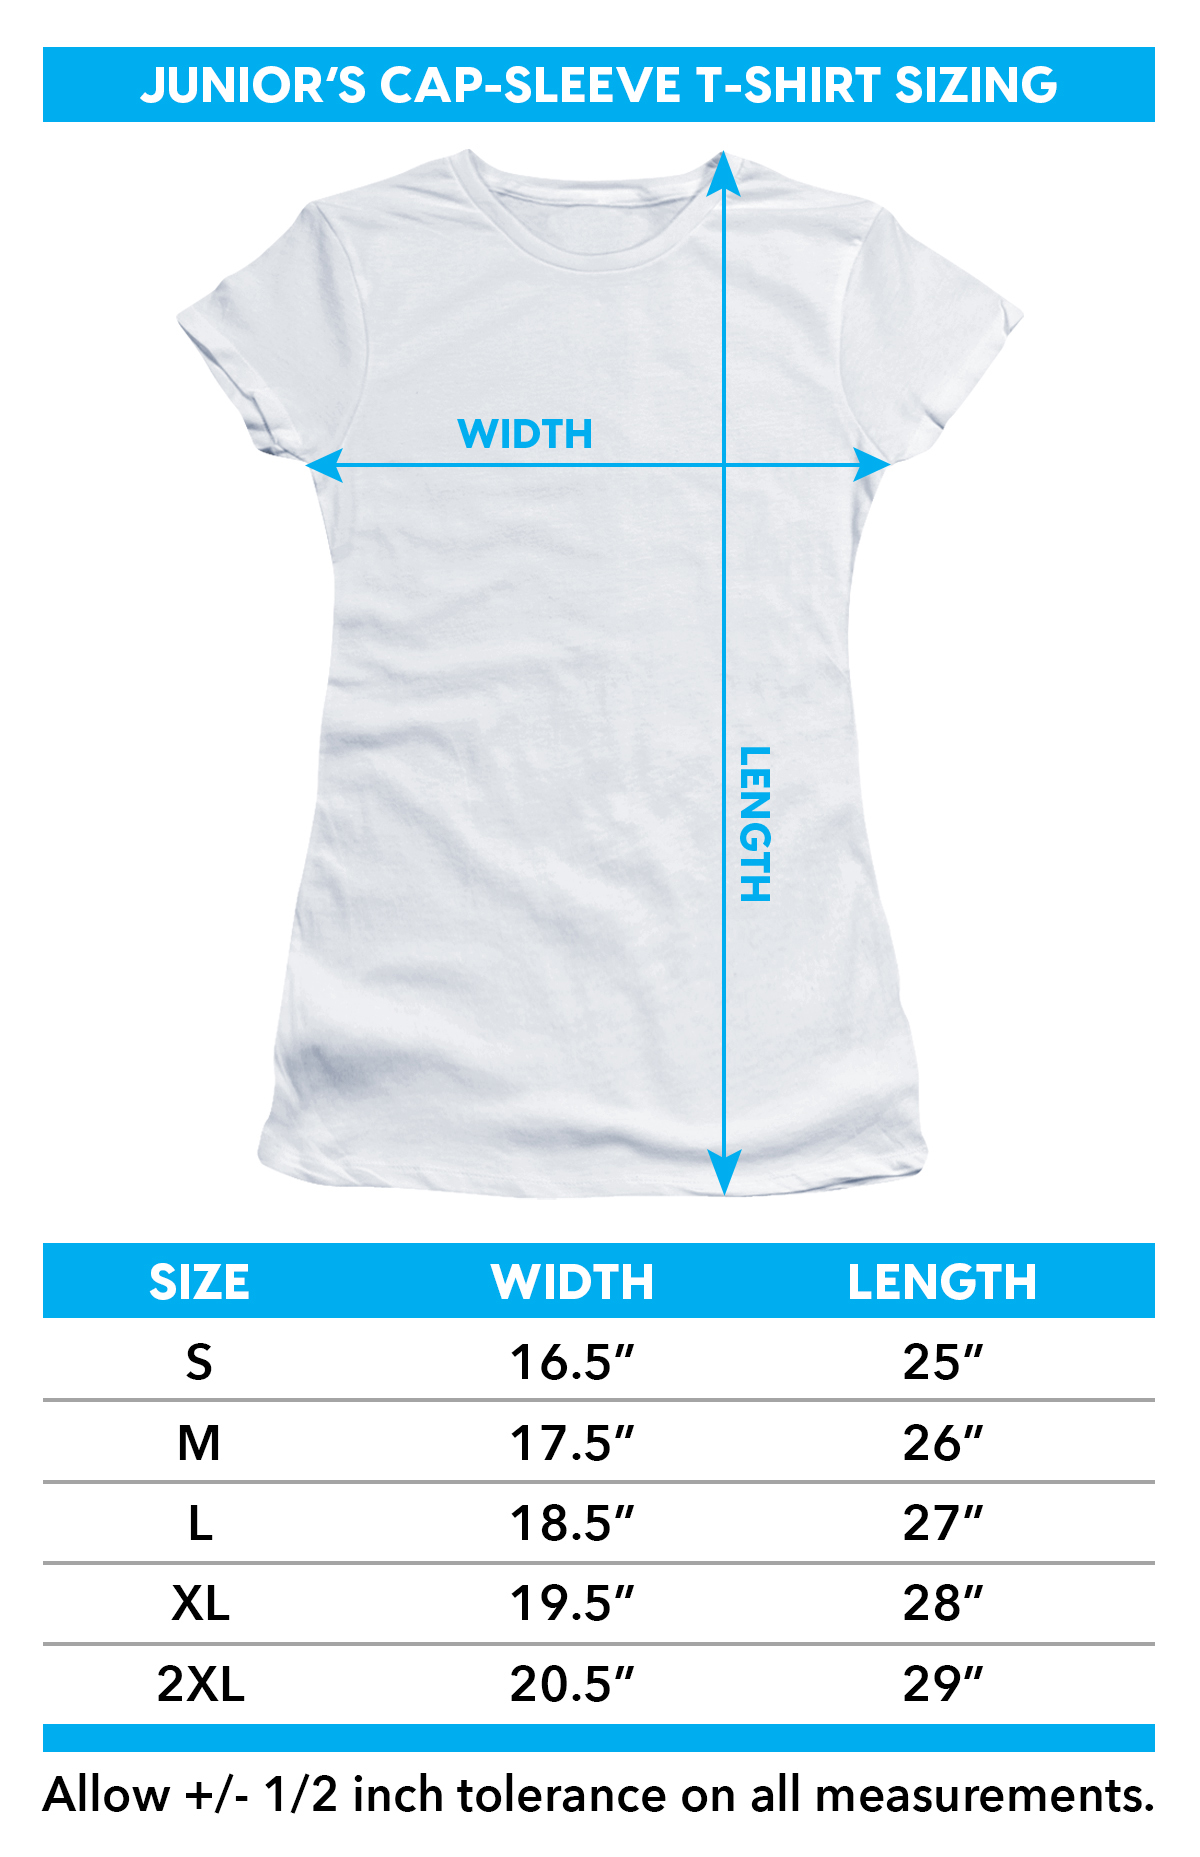 Girls sizing chart for The Lost Boys Girls T-Shirt - Be One of Us TRV-WBM945-JS